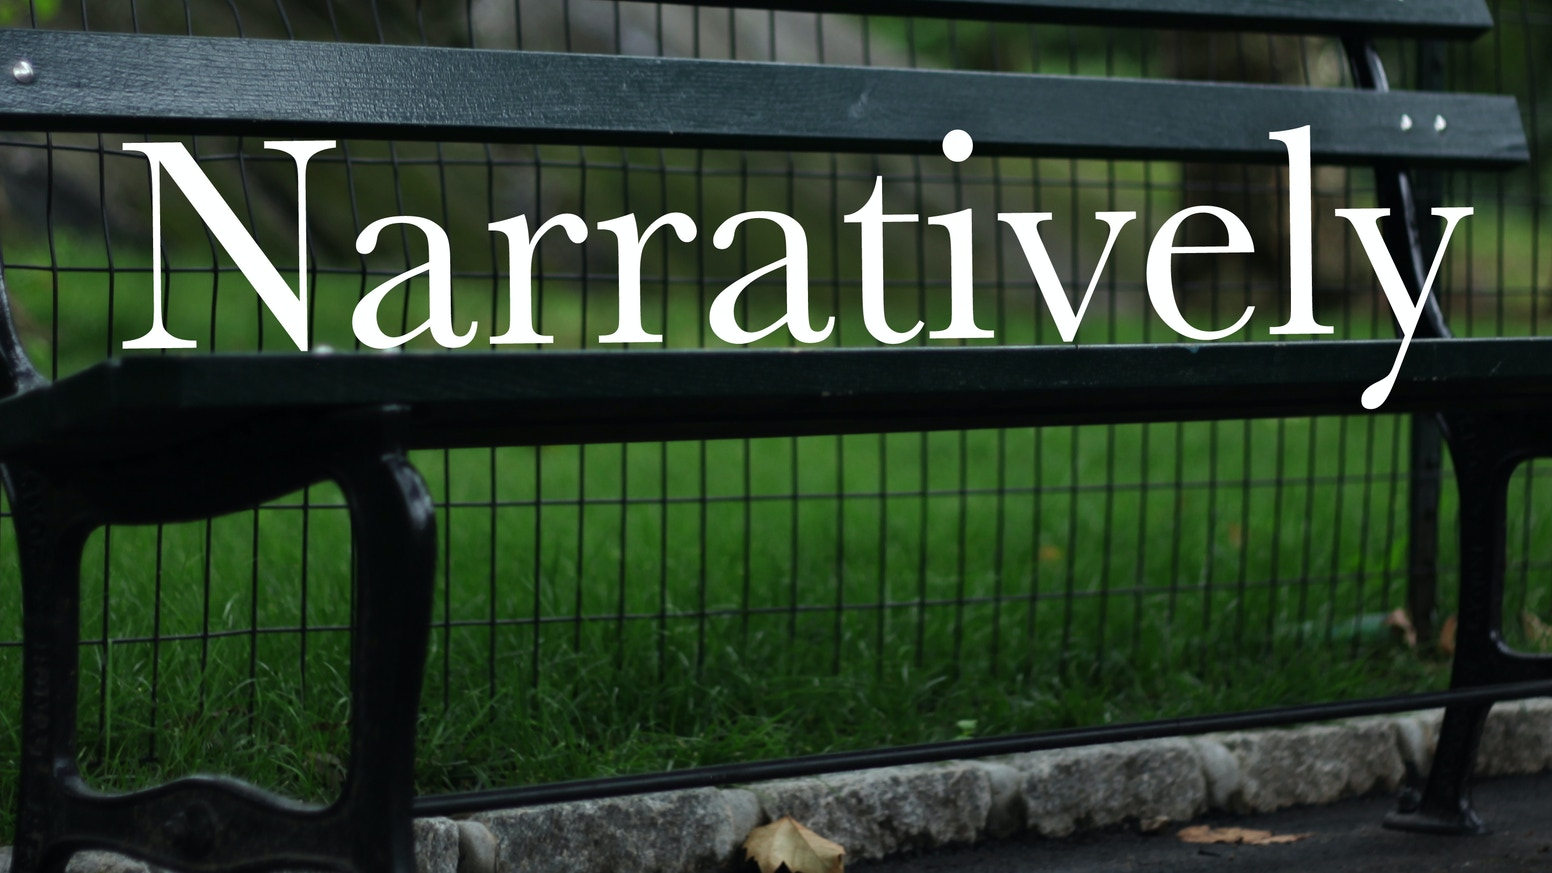 Narratively is an online publication devoted to untold human stories.